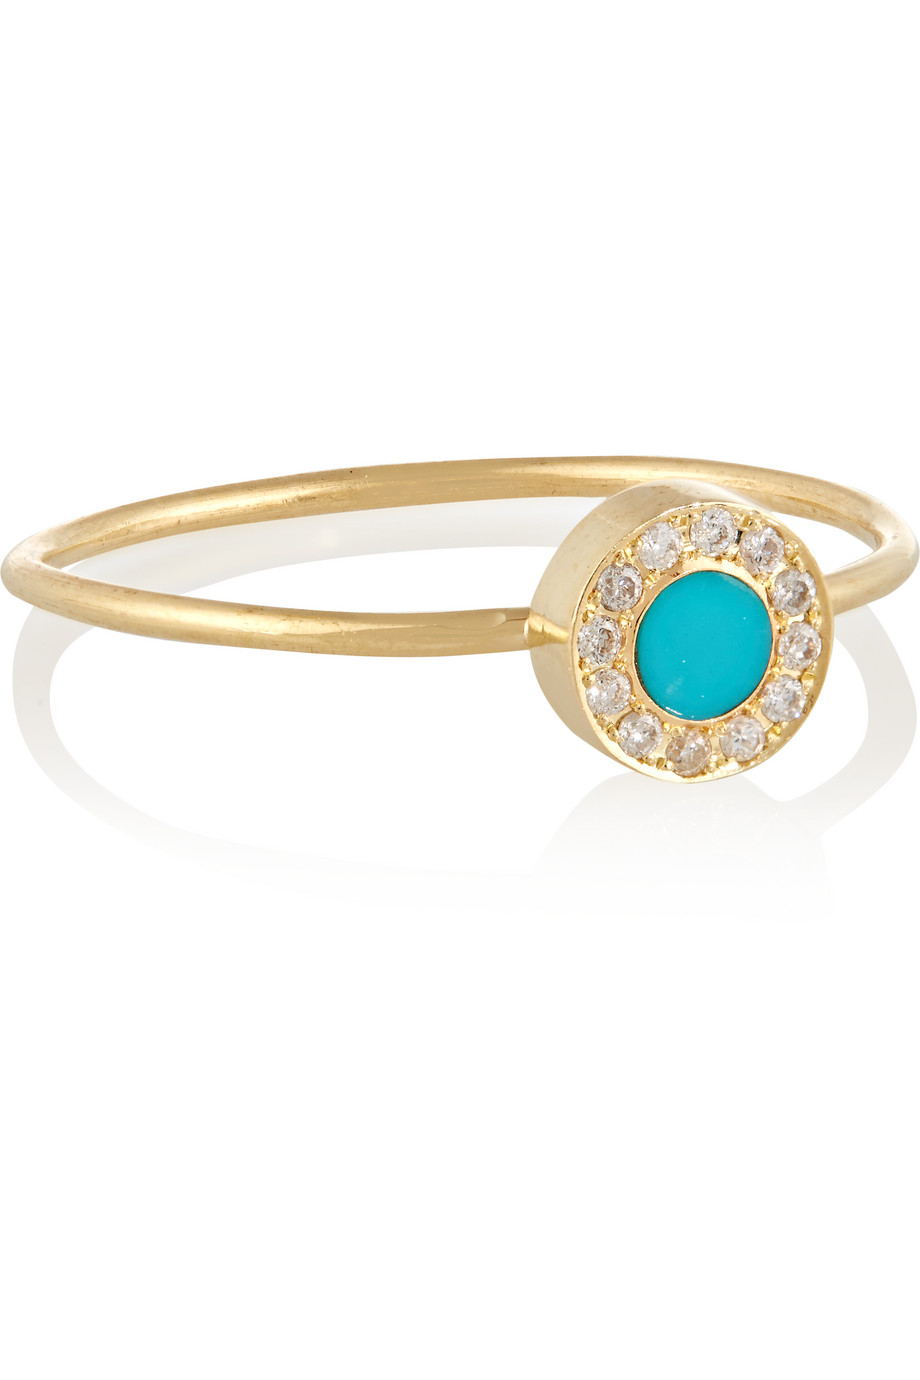 Jennifer Meyer 18-Karat Gold, Diamond and Turquoise Circle Ring, Turquoise/Gold, Women's, Size: 5